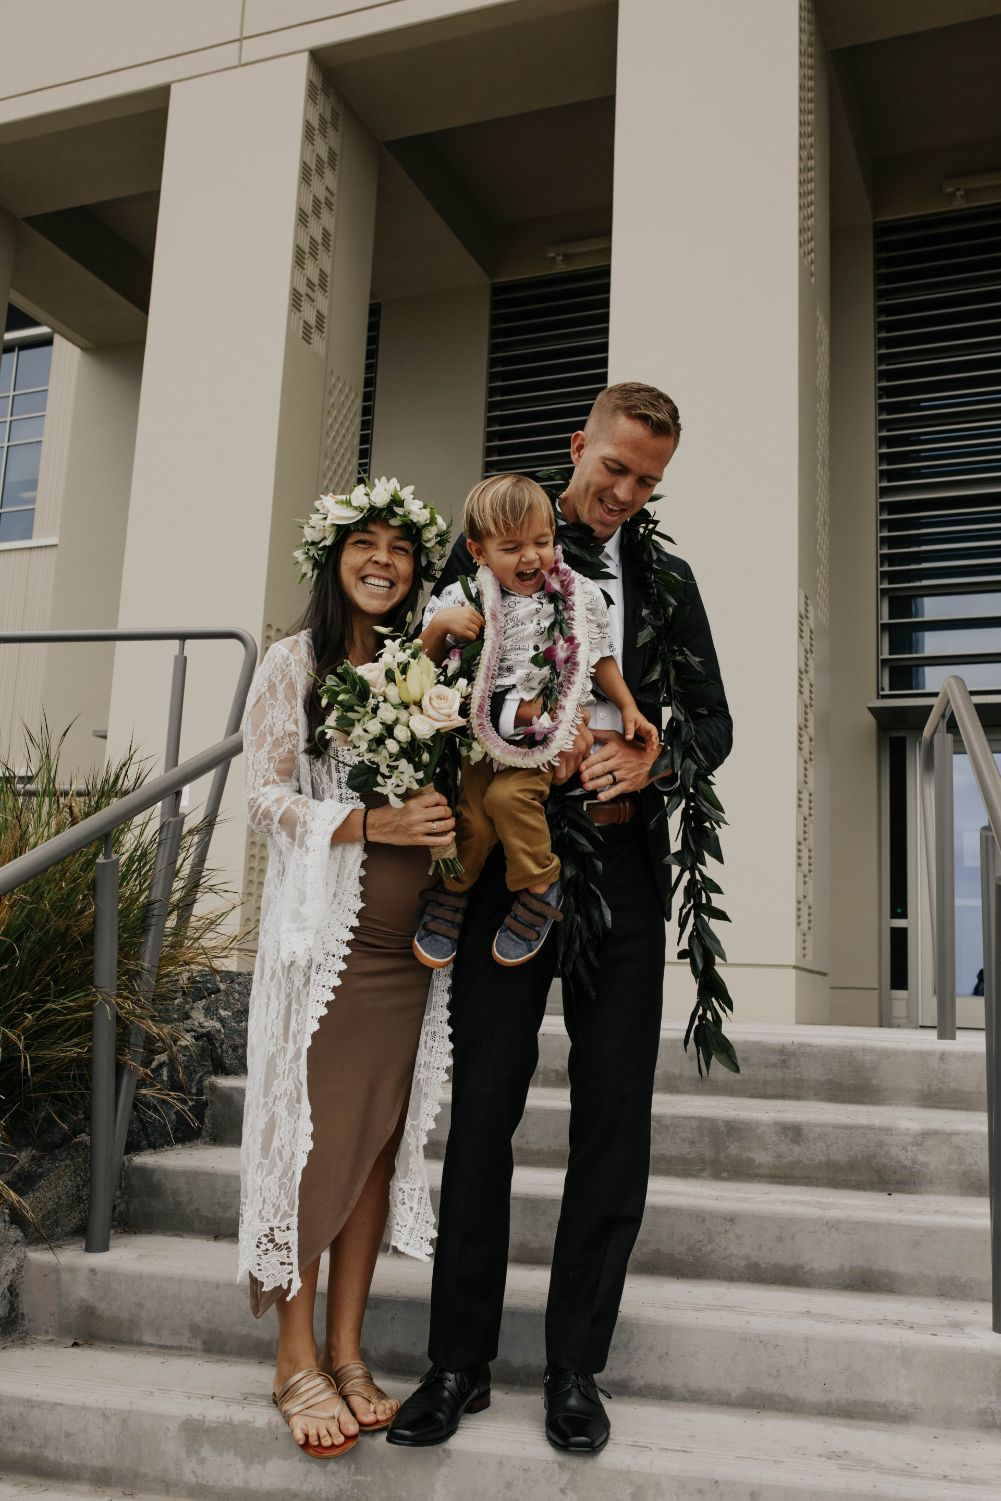 0 Pros and Cons of Having Children at Your Wedding